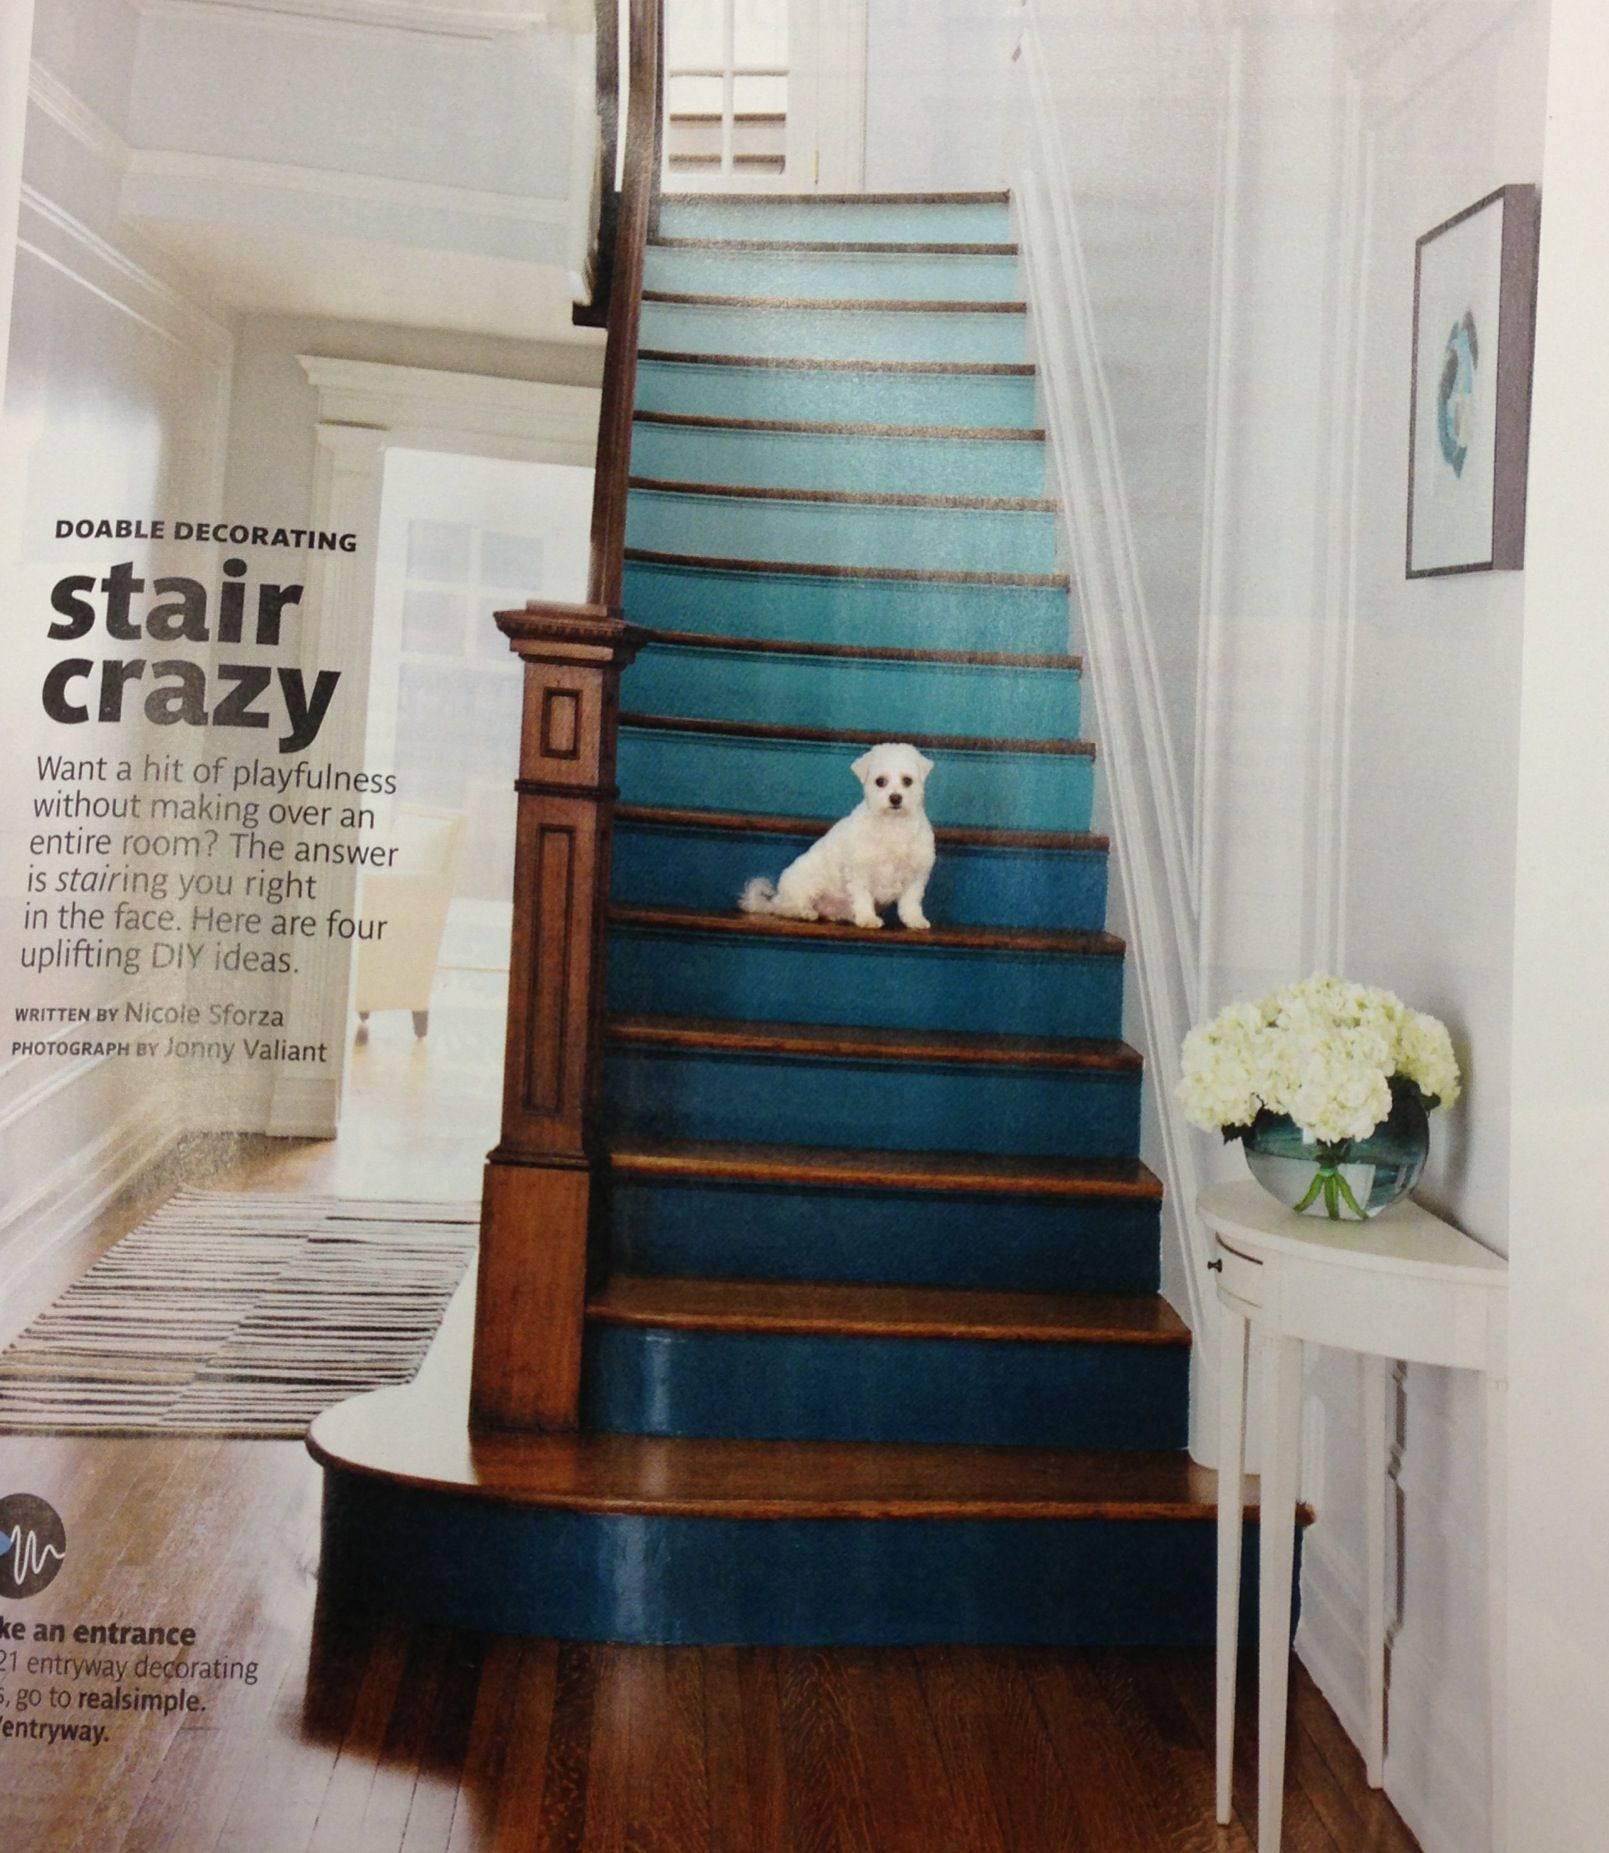 Wood Stairs Painted Risers: Ombré Painted Stair Risers And Natural Wood Steps/banister